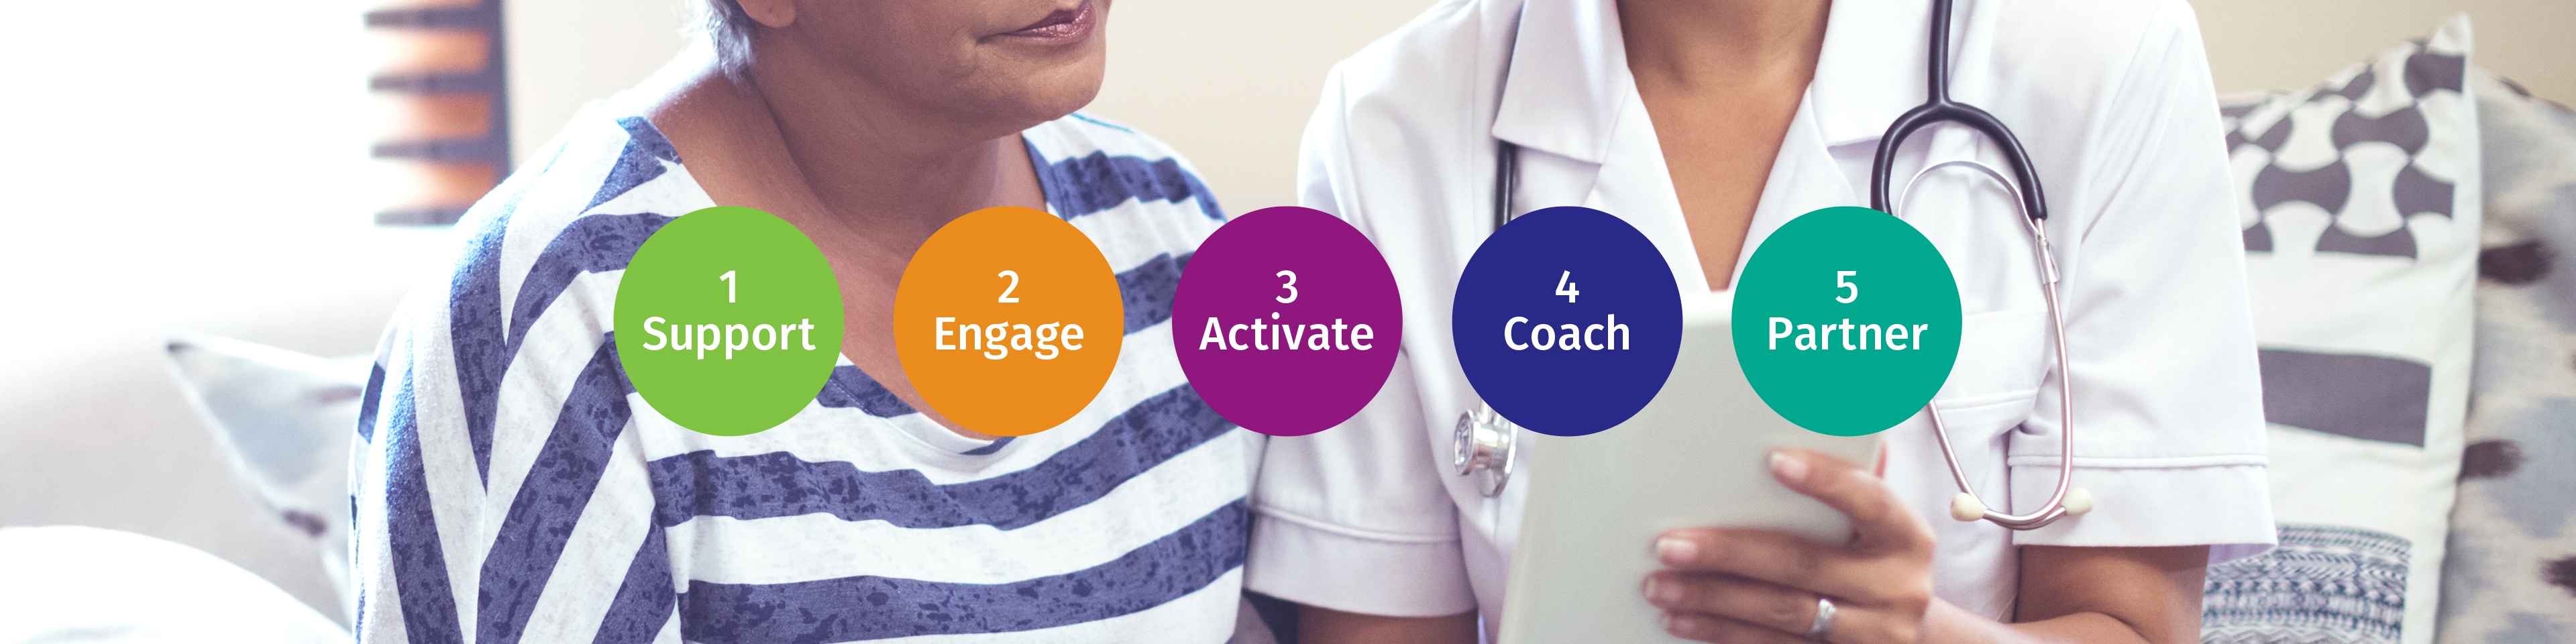 The five steps of the patient engagement maturity model